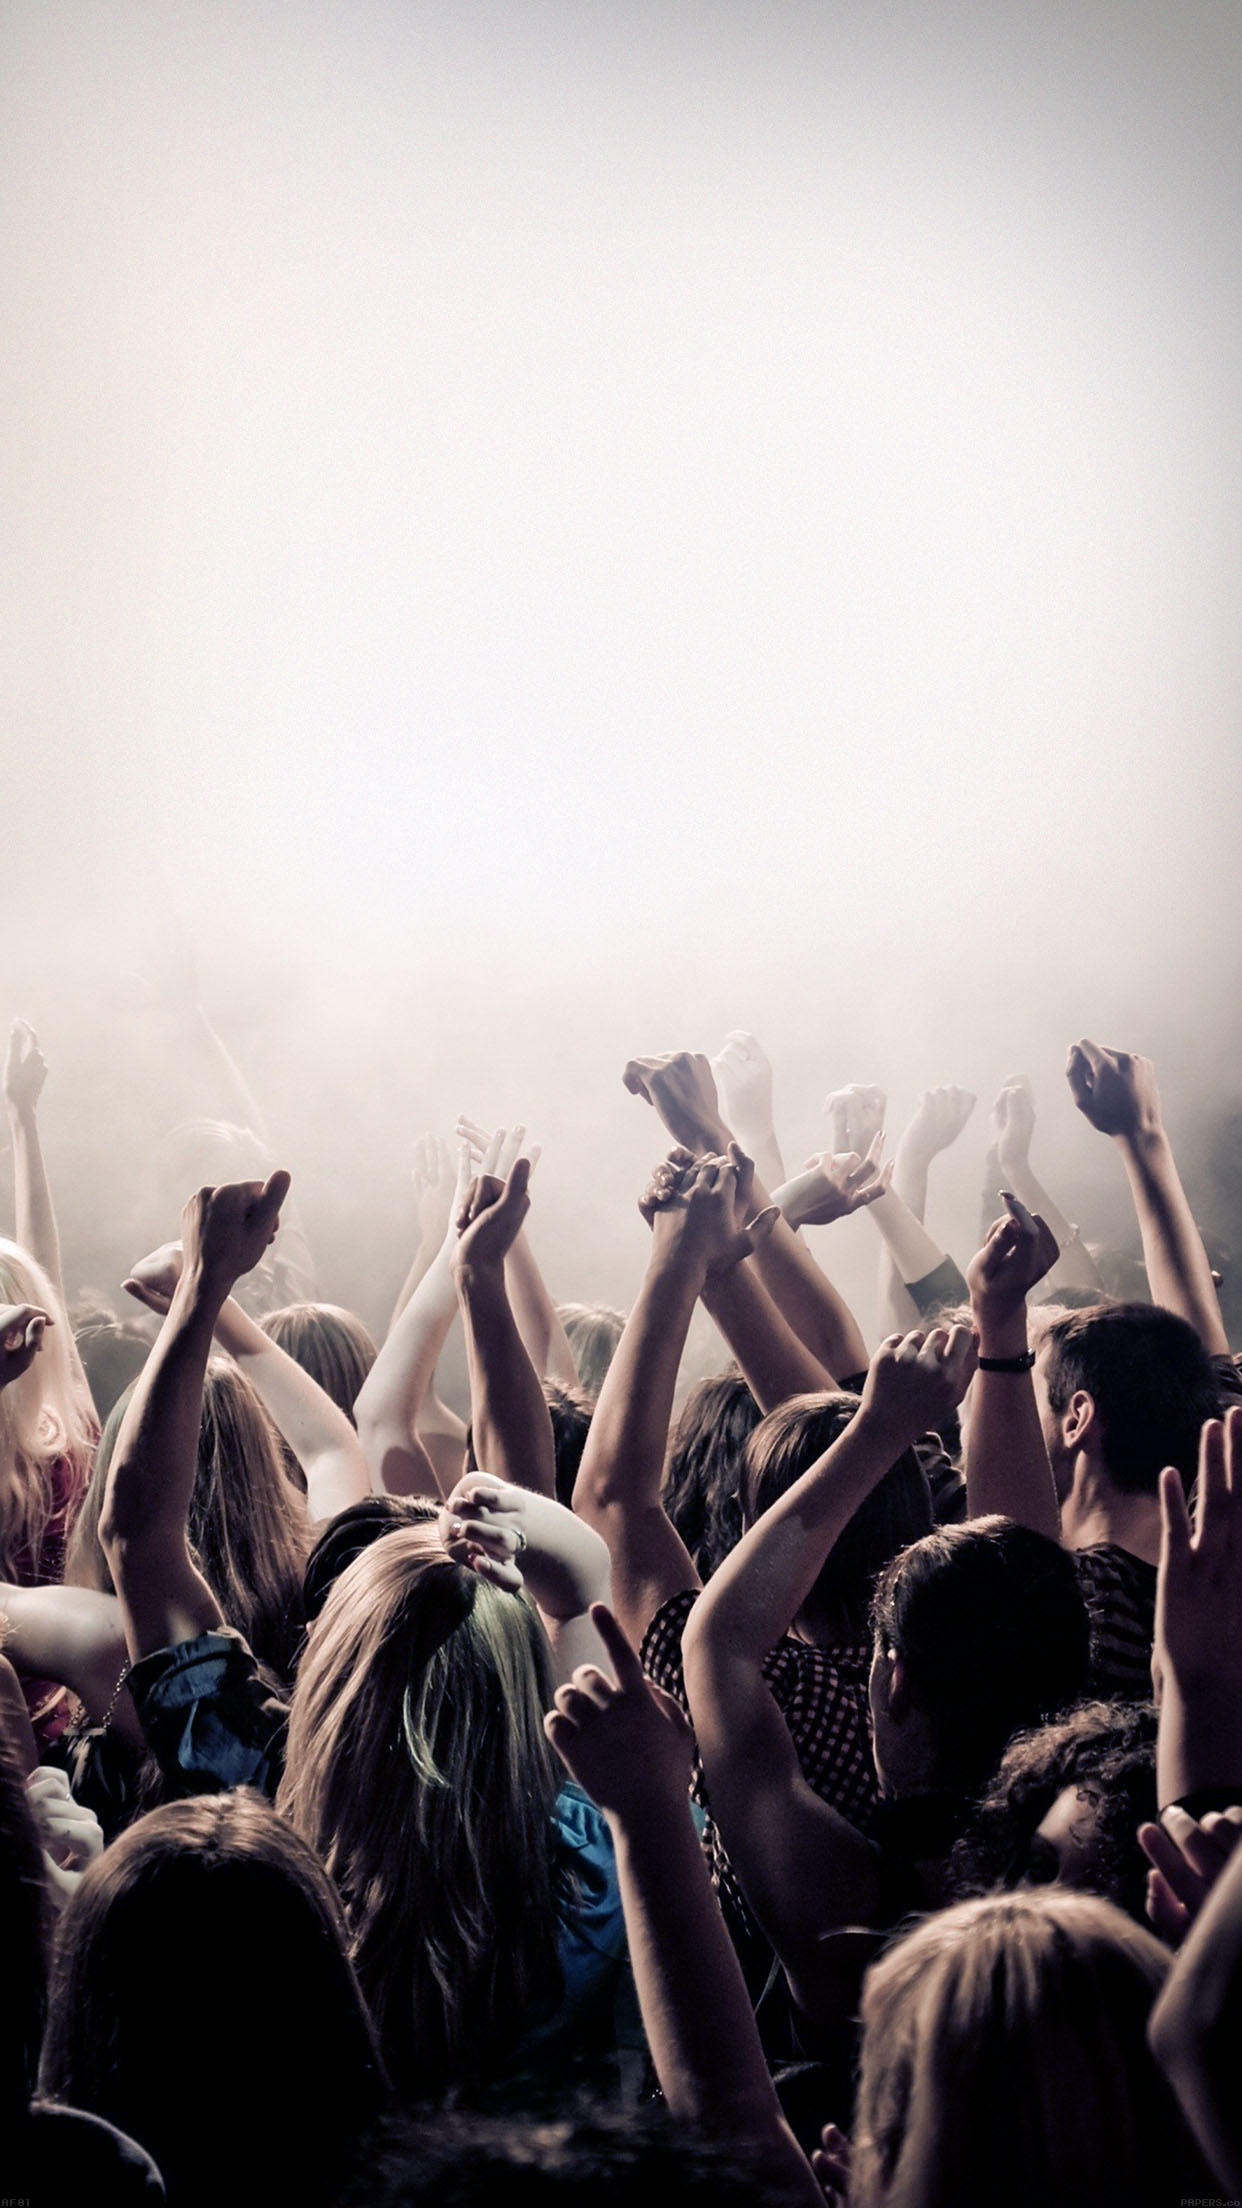 music foule 3Wallpapers iPhone Parallax Music Crowd